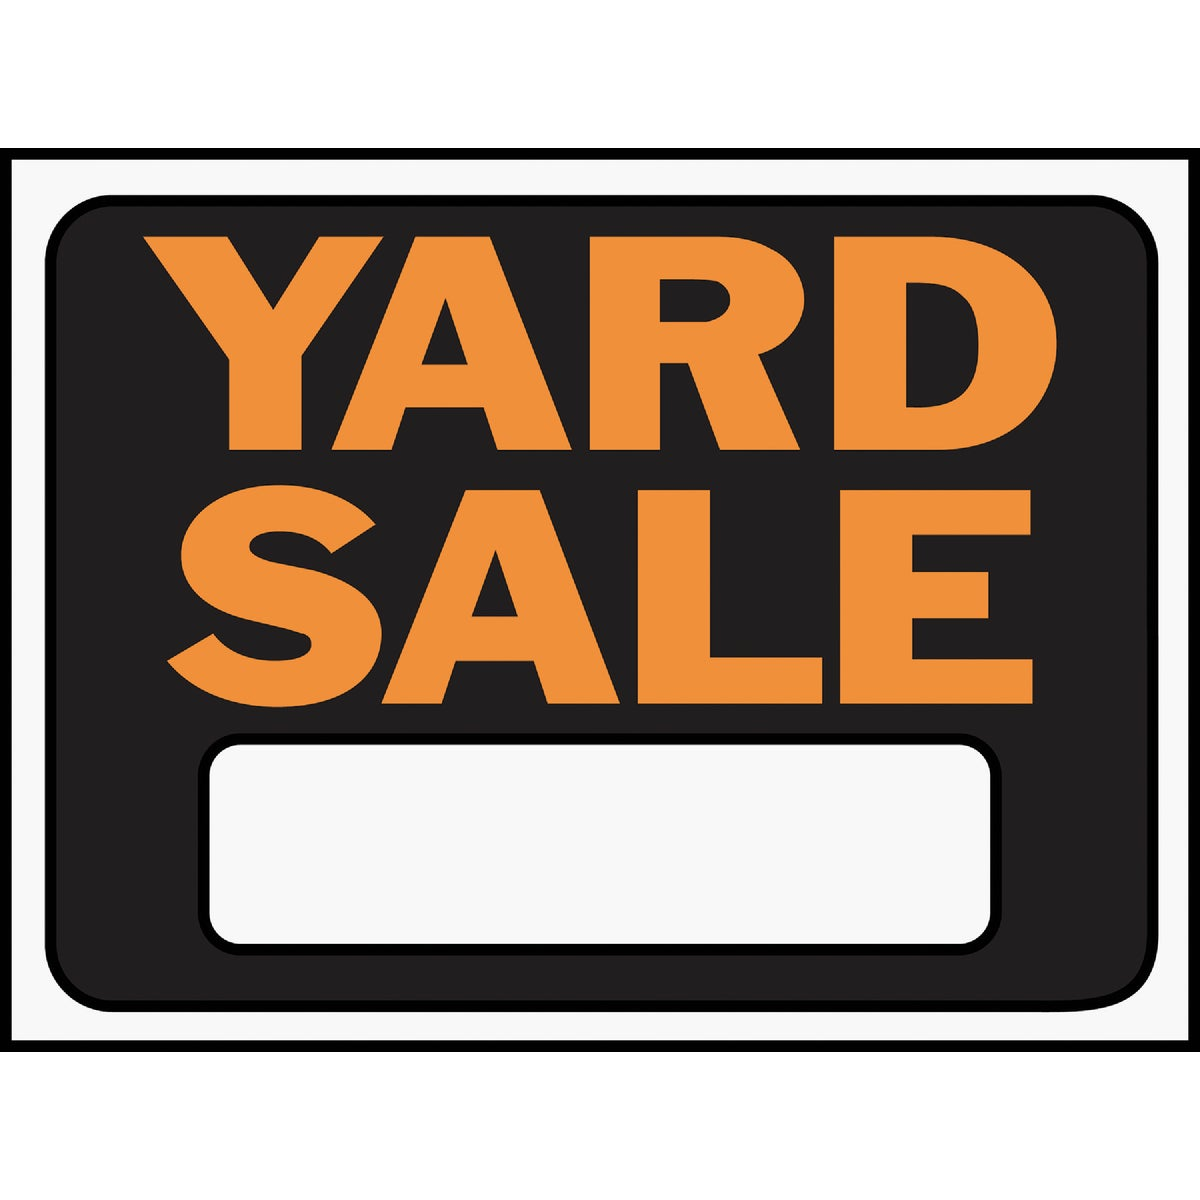 9X12 YARD SALE SIGN - 3033 by Hy Ko Prods Co